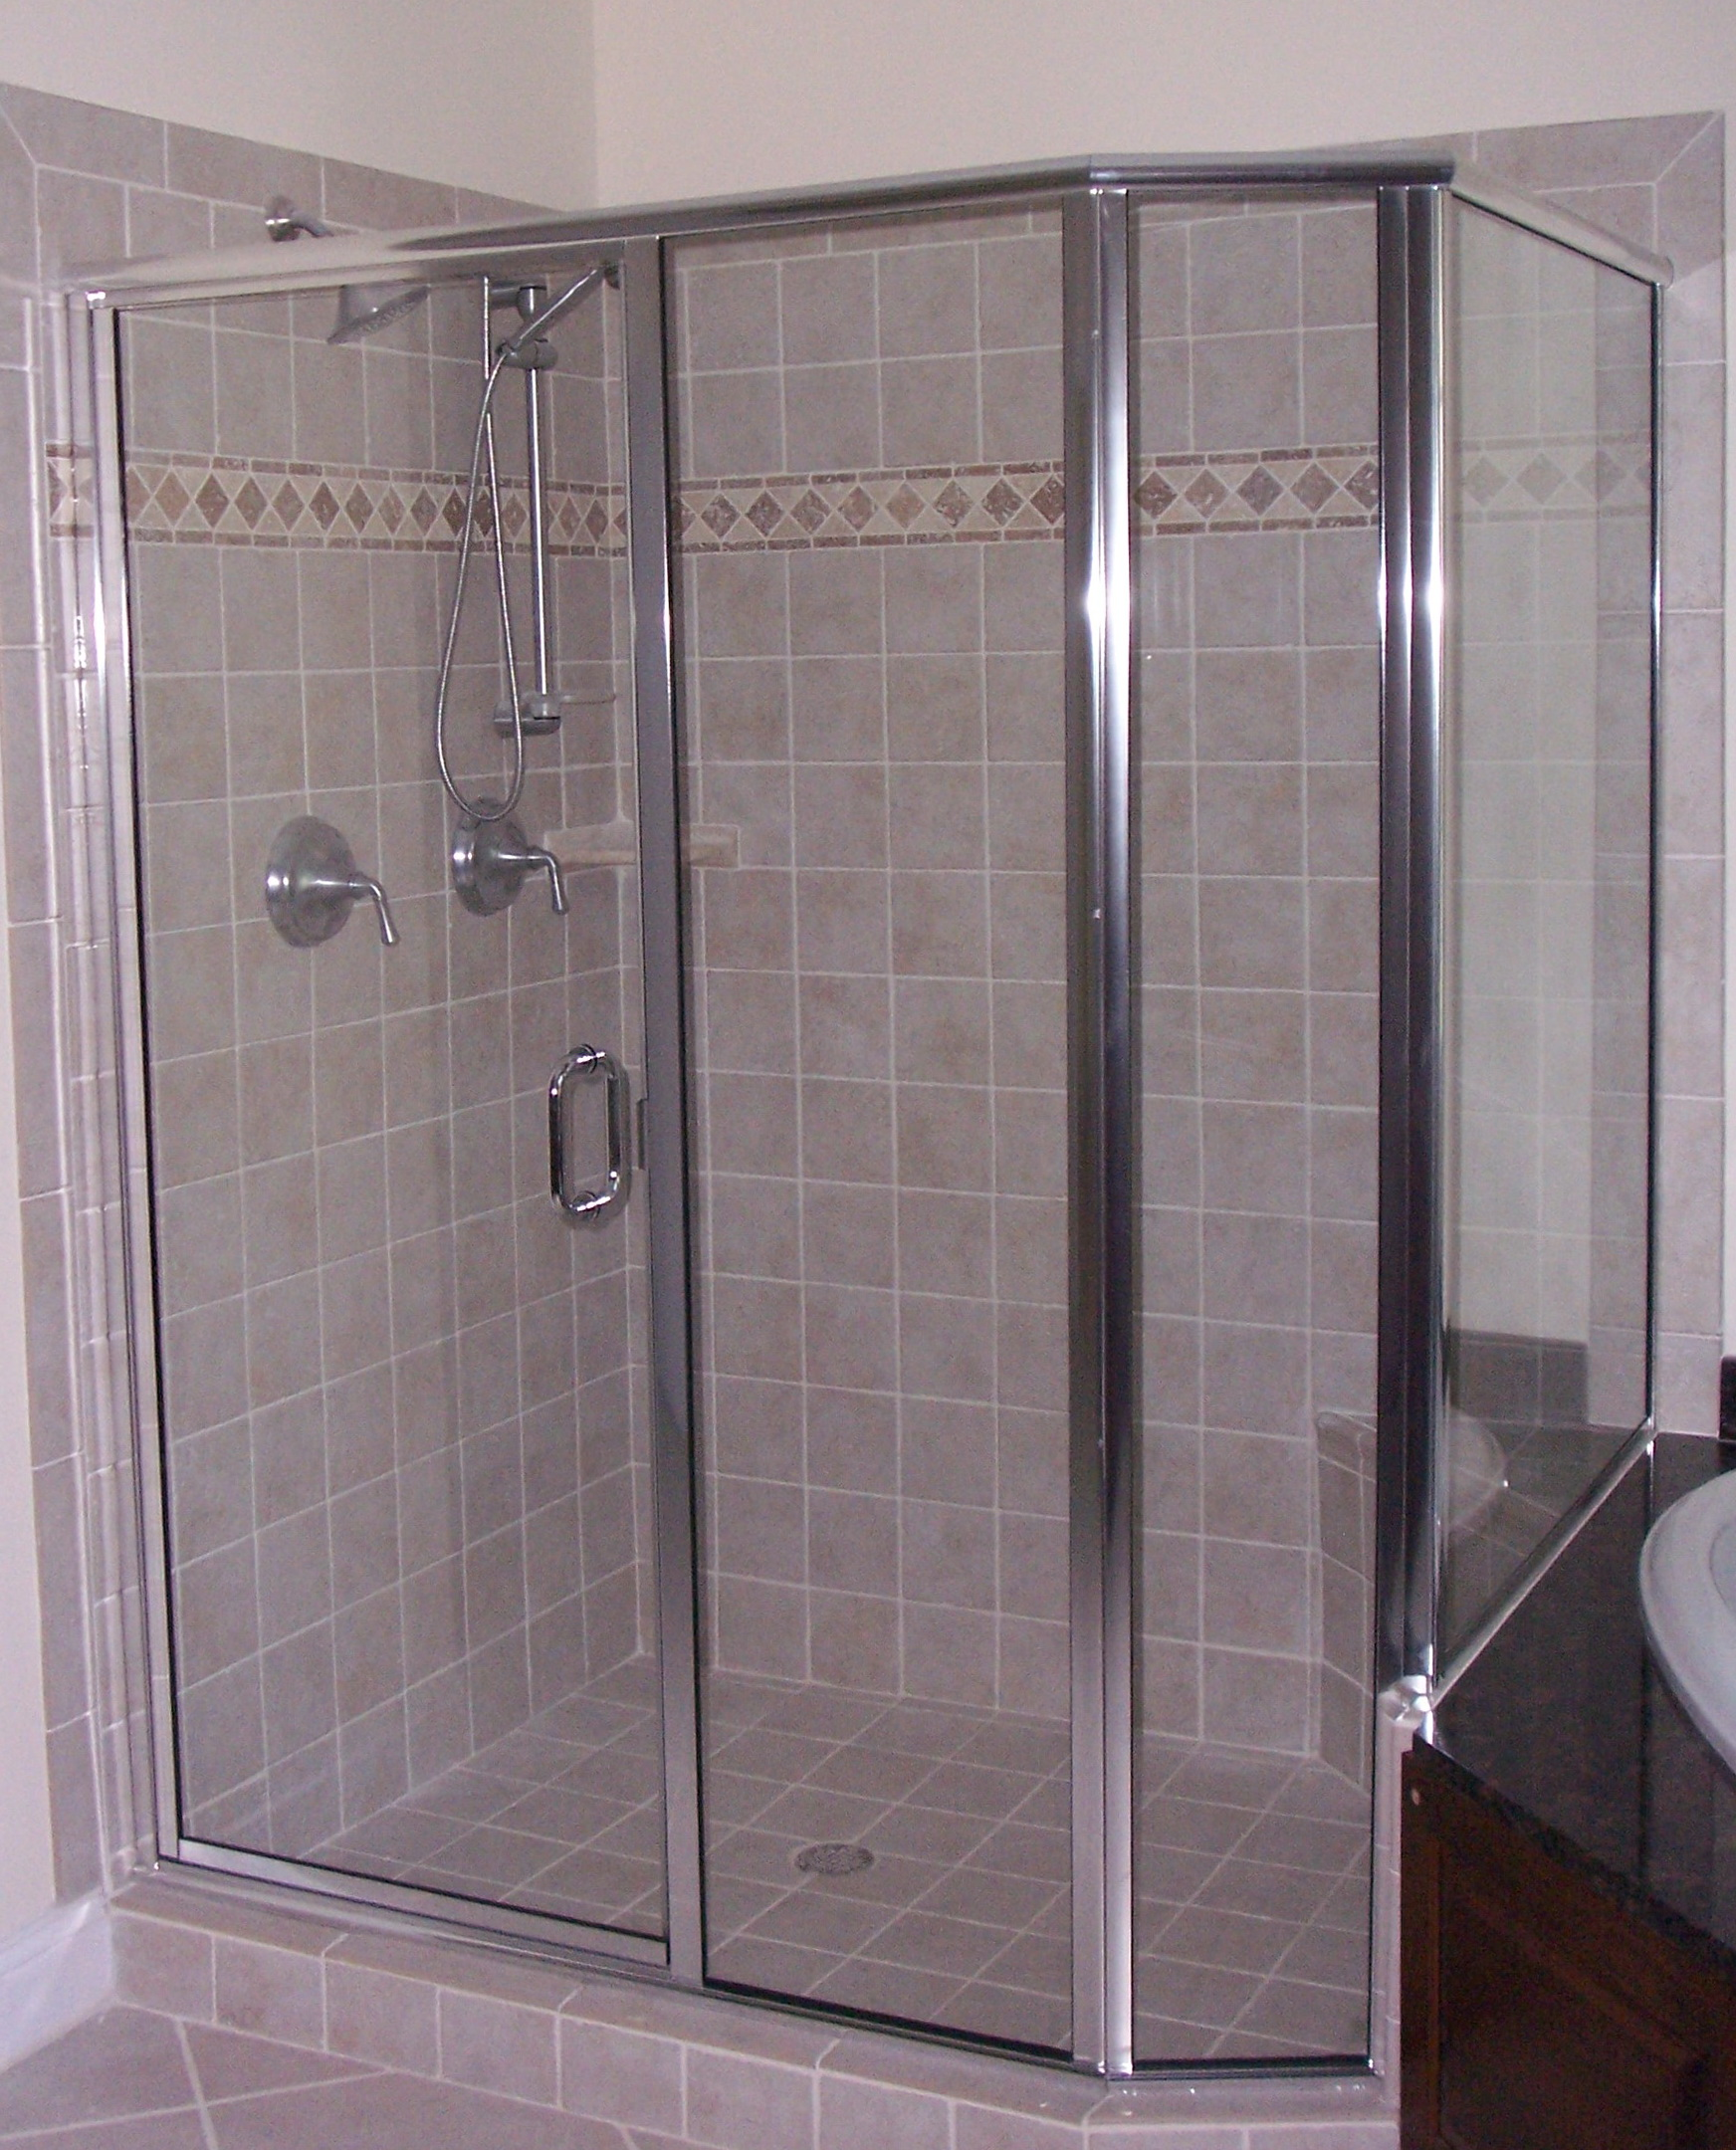 Frameless Shower Doors Vs Framed